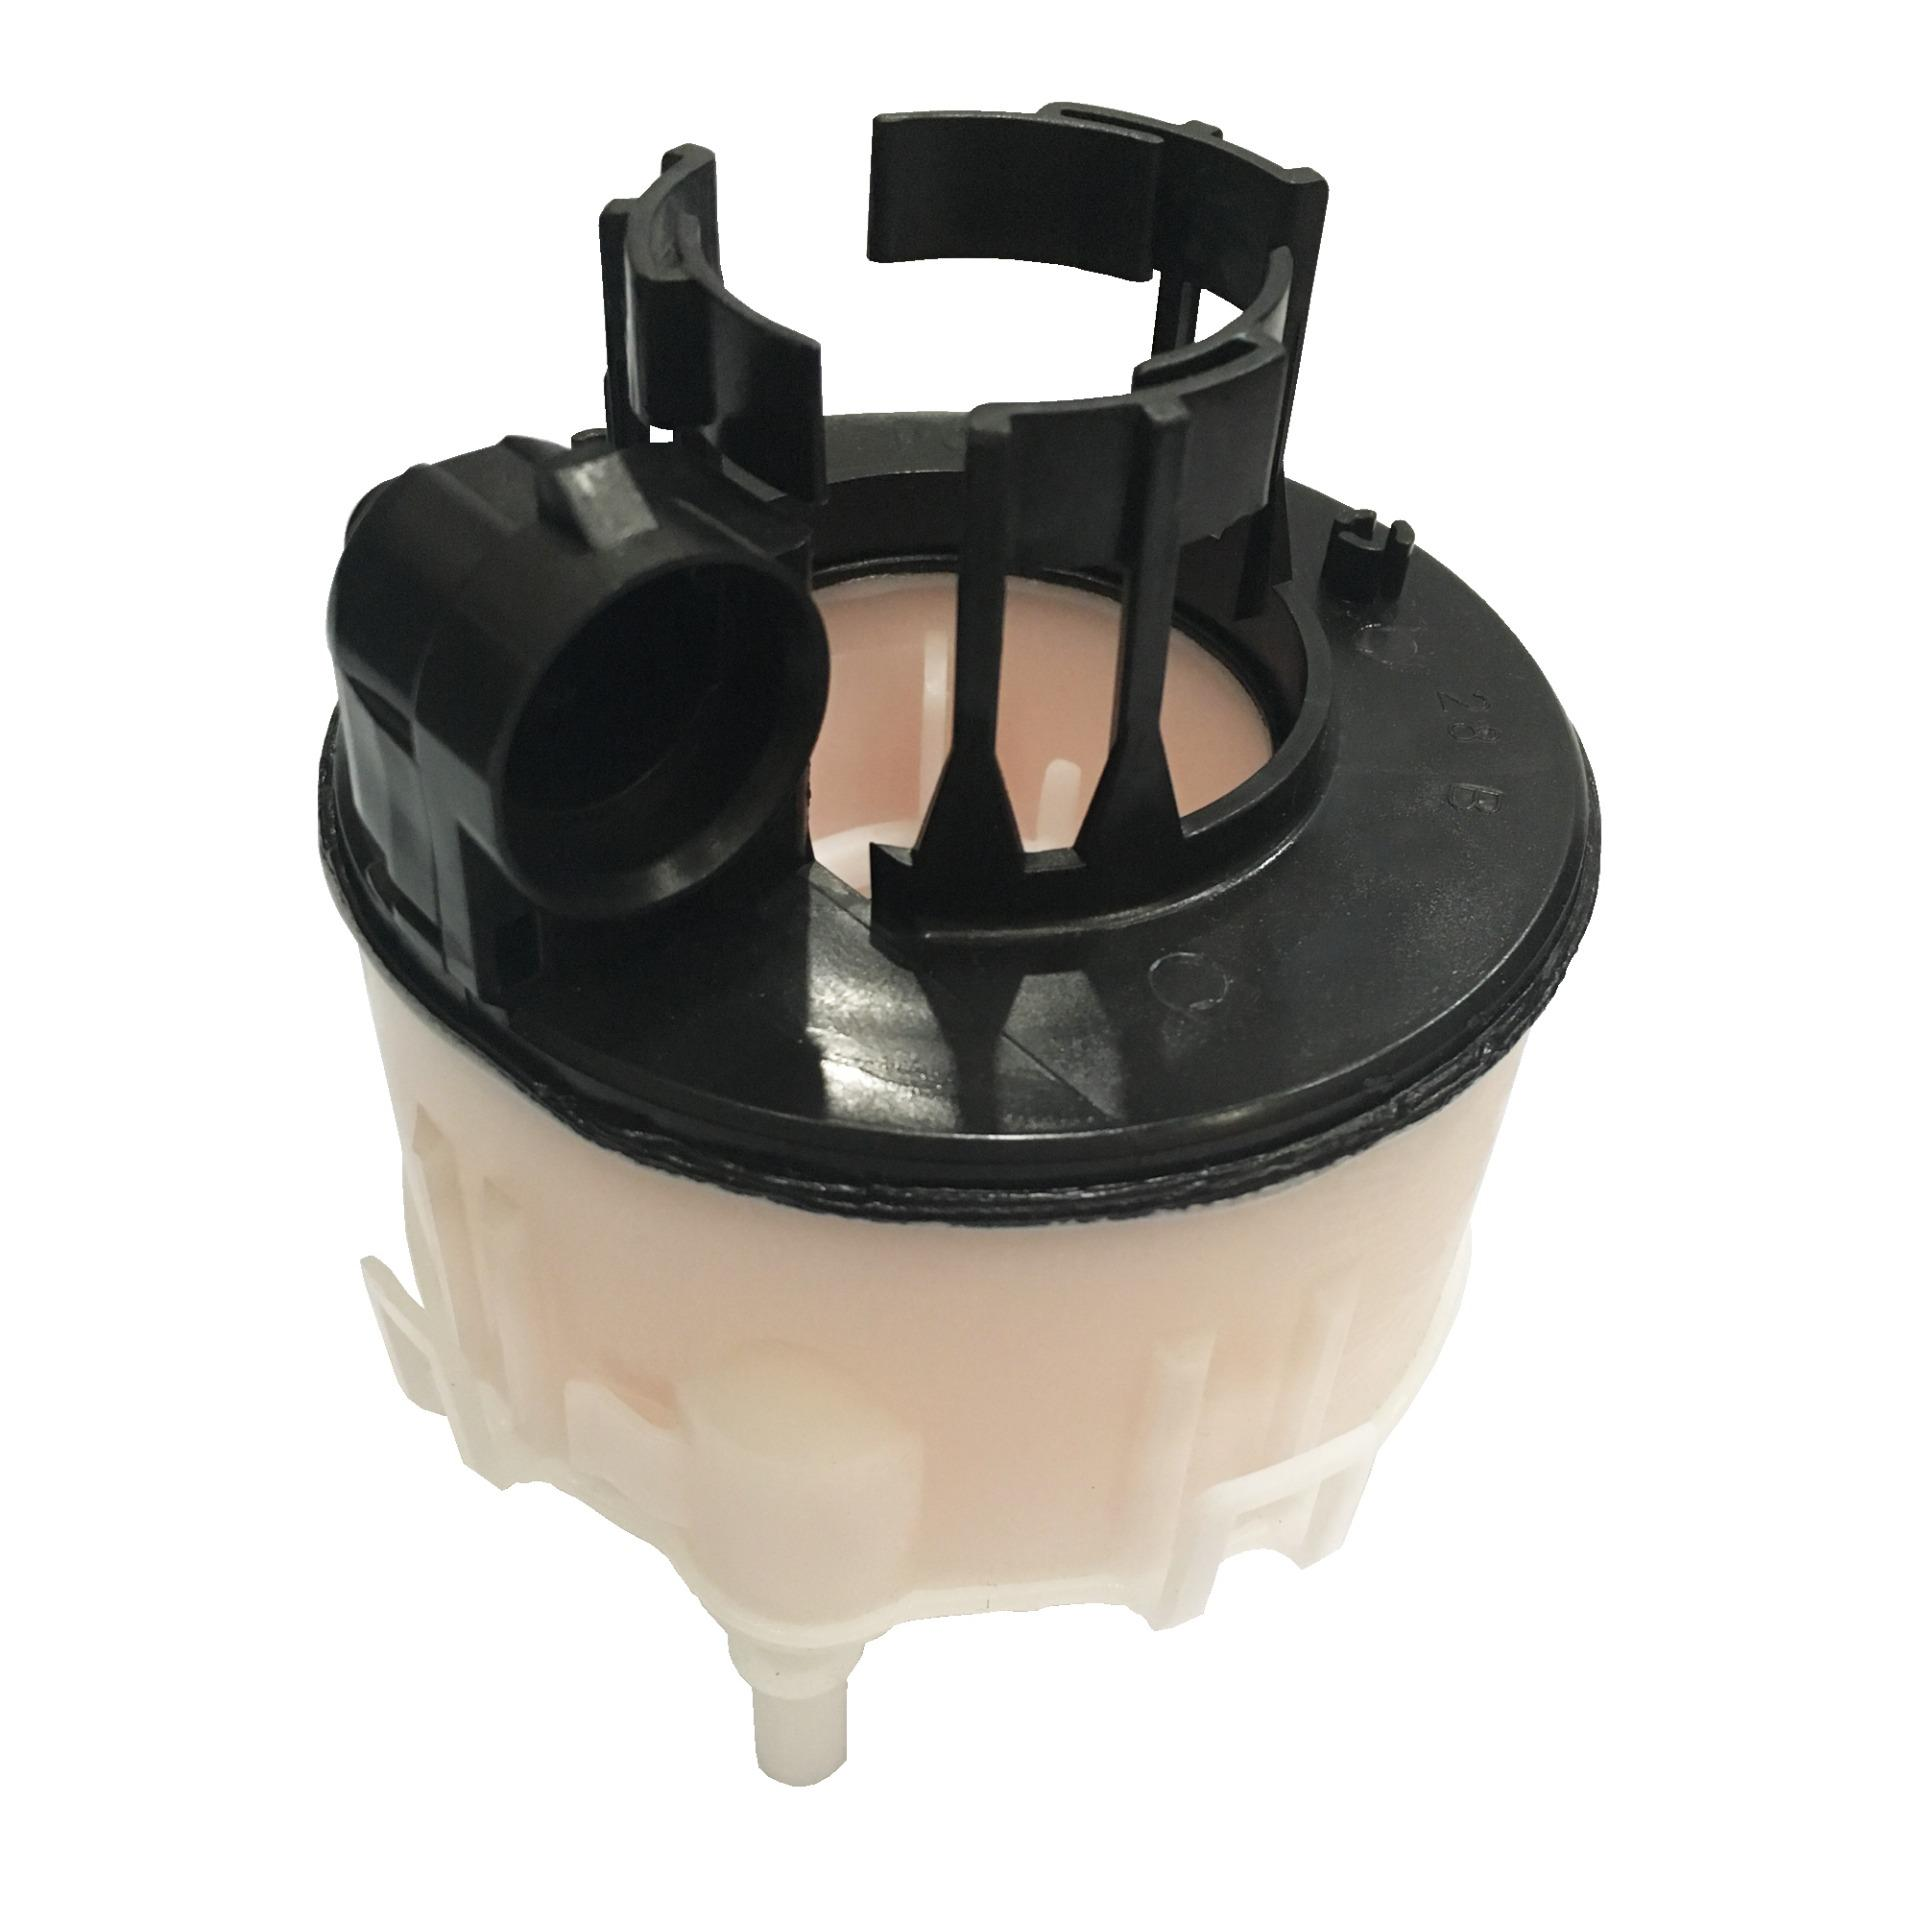 Fuel Filter For Sale Gas Online Brands Prices Reviews In 2005 Sport Trac Fleetmax Kia Sorento 2010 2015